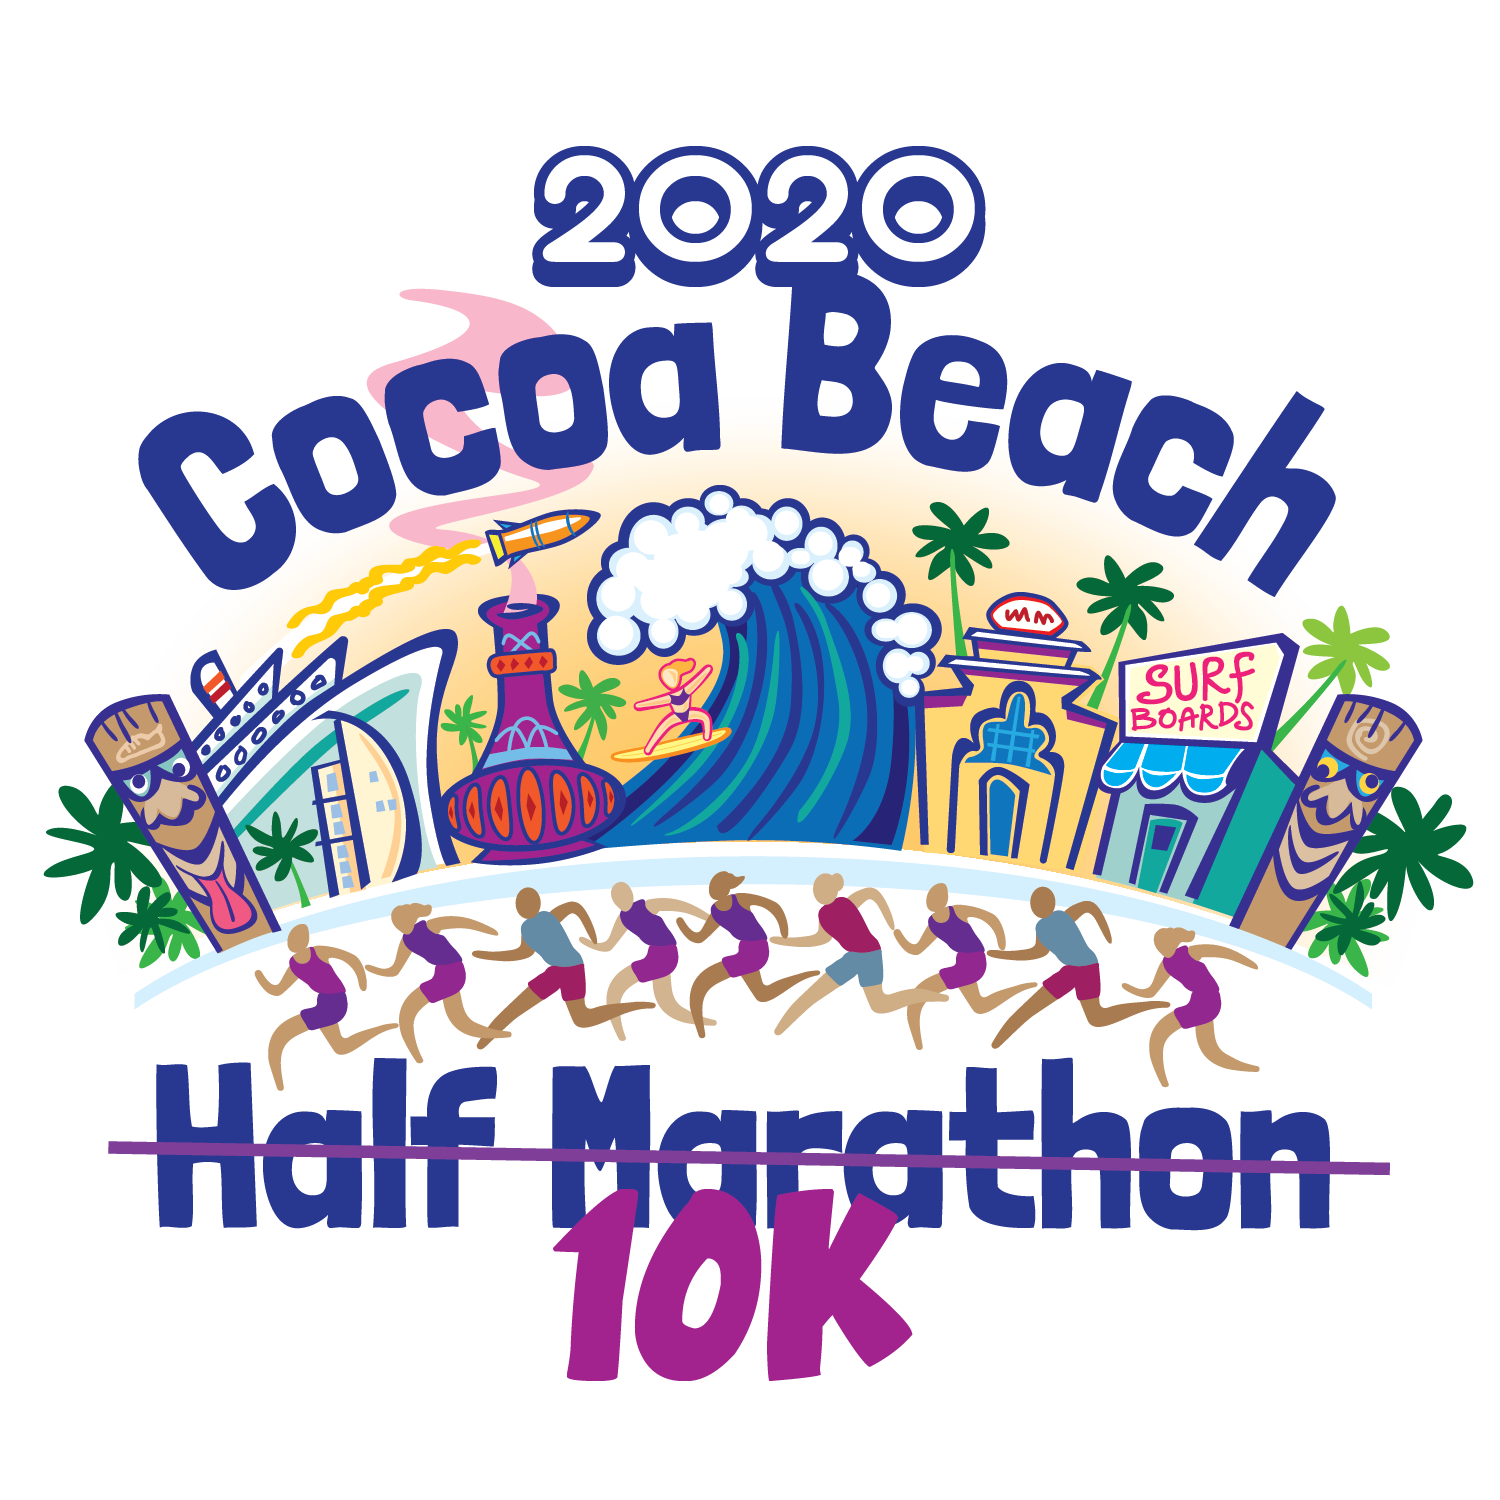 Cocoa Beach Half Marathon Sunday October 11th 2020